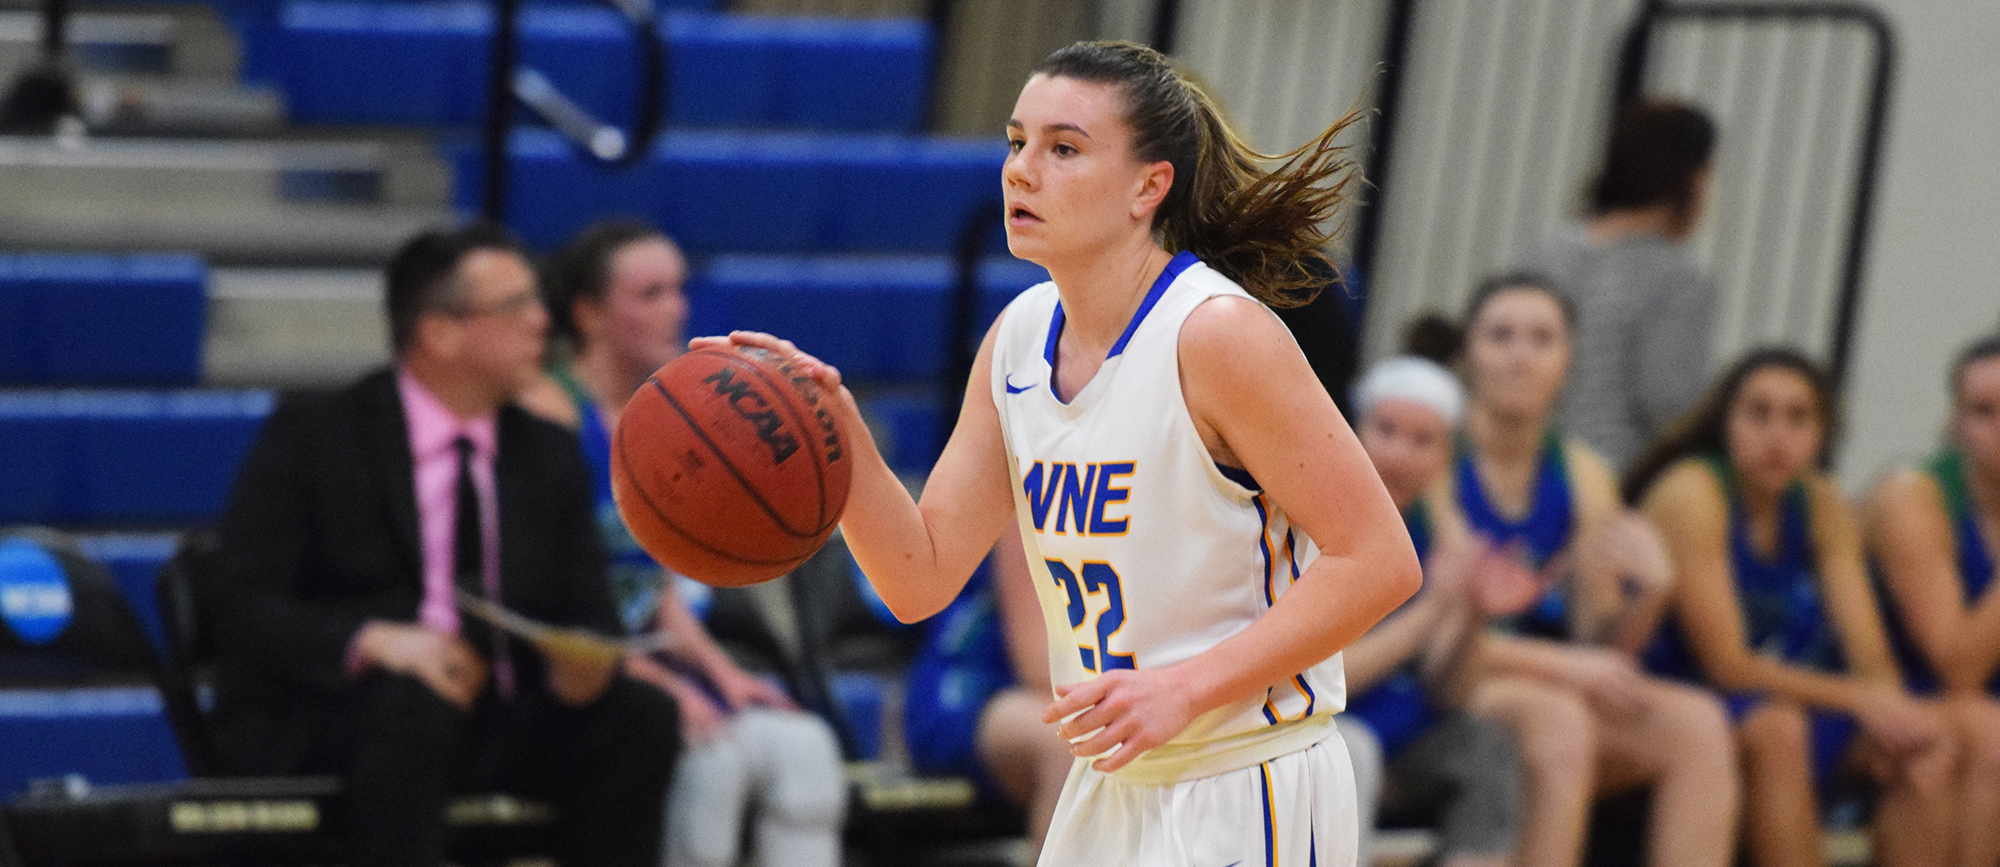 Western New England advanced to the CCC semifinals for the fifth straight season with a 64-52 win over Salve Regina on Tuesday night at the AHLC. (Photo by Rachael Margossian)